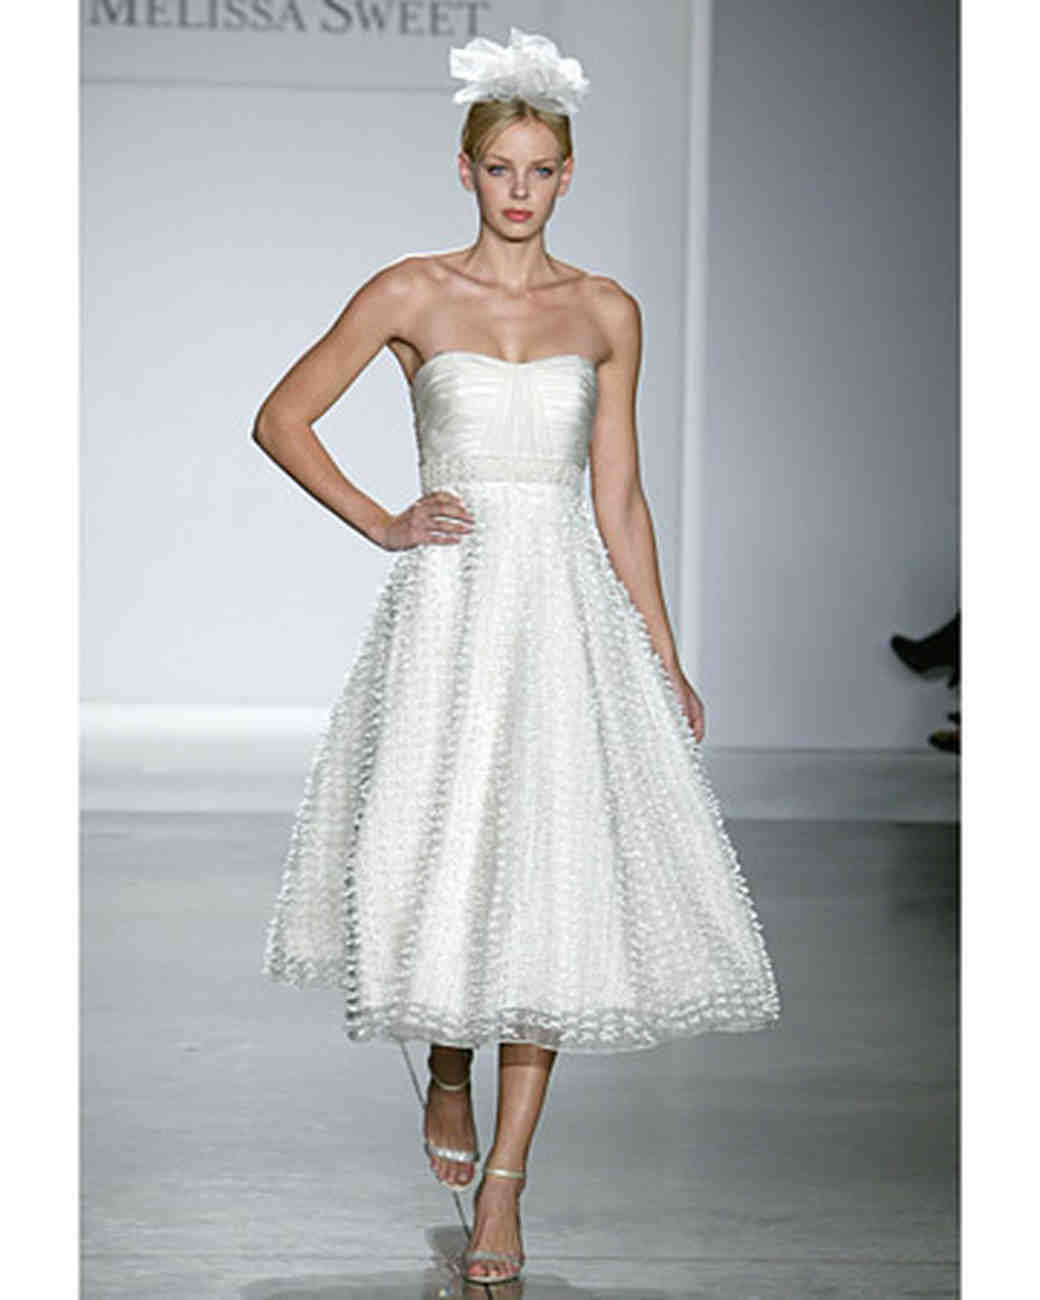 melissa sweet spring bridal collection melissa sweet wedding dresses Melissa Sweet